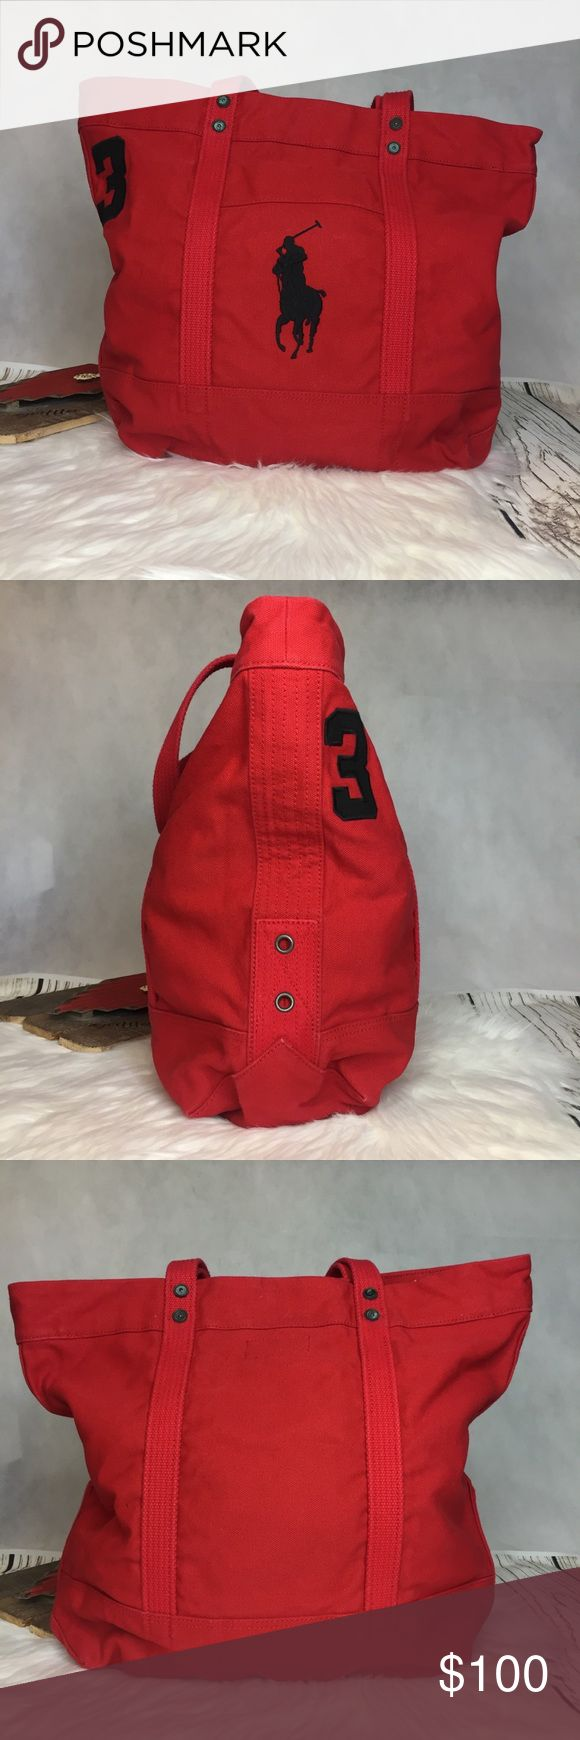 """Polo Ralph Lauren Red Canvas Embroidered Tote Bag NWT!  ▪️height: 13"""" ▪️length: 16"""" ▪️depth: 6"""" ▪️strap/handle drop: 8""""  Reasonable offers are always welcome! Please no trades 🌸 Polo by Ralph Lauren Bags Totes"""